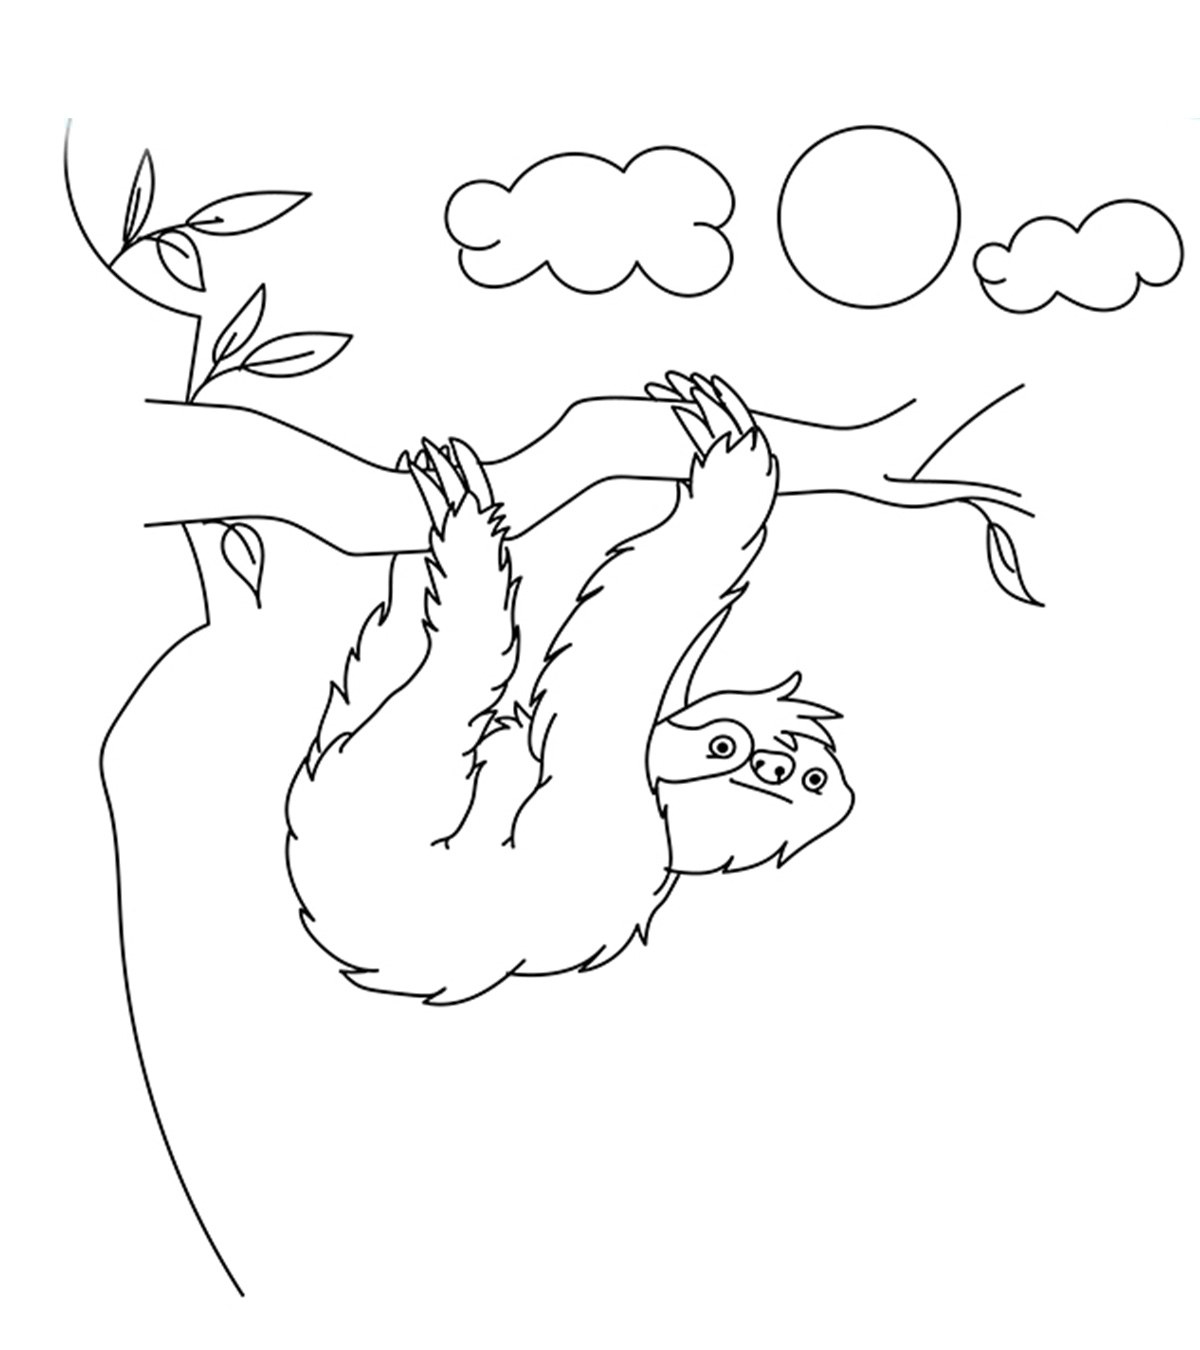 - Top 10 Sloth Coloring Pages For Your Toddler